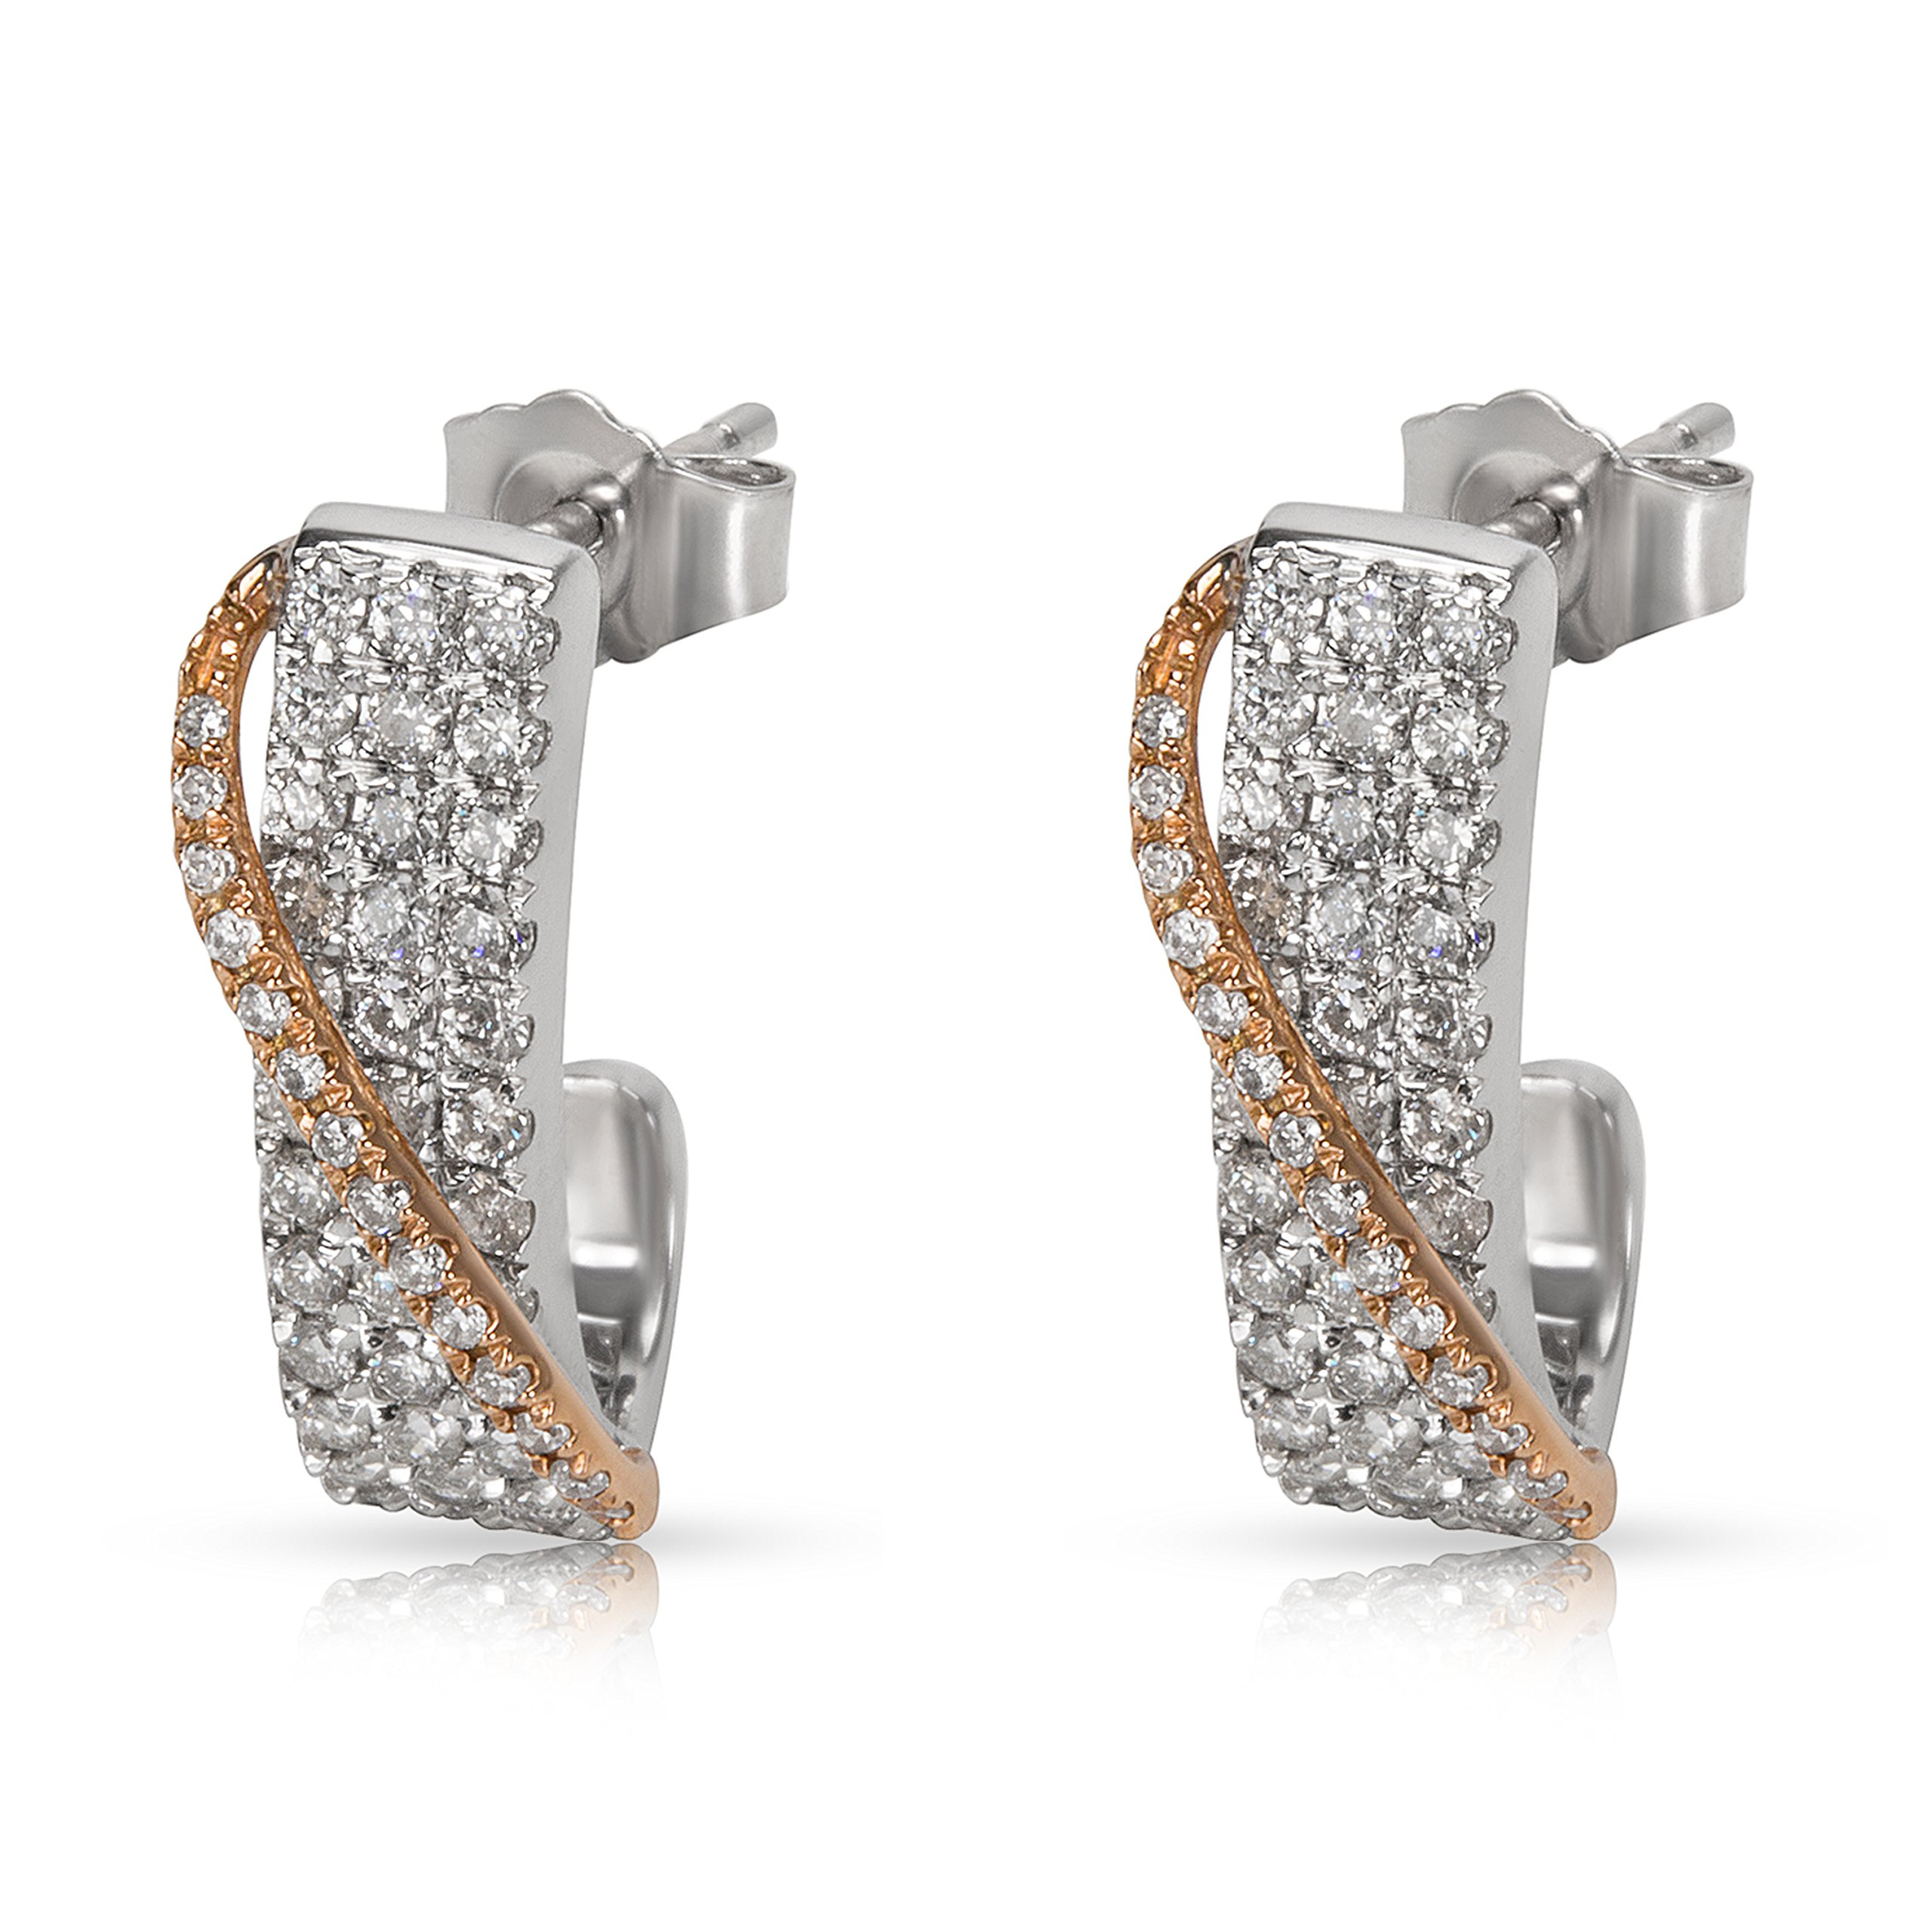 BRAND NEW Pave Diamond Cross Over Earrings in 14K Two Tone Gold (1.00 CTW)